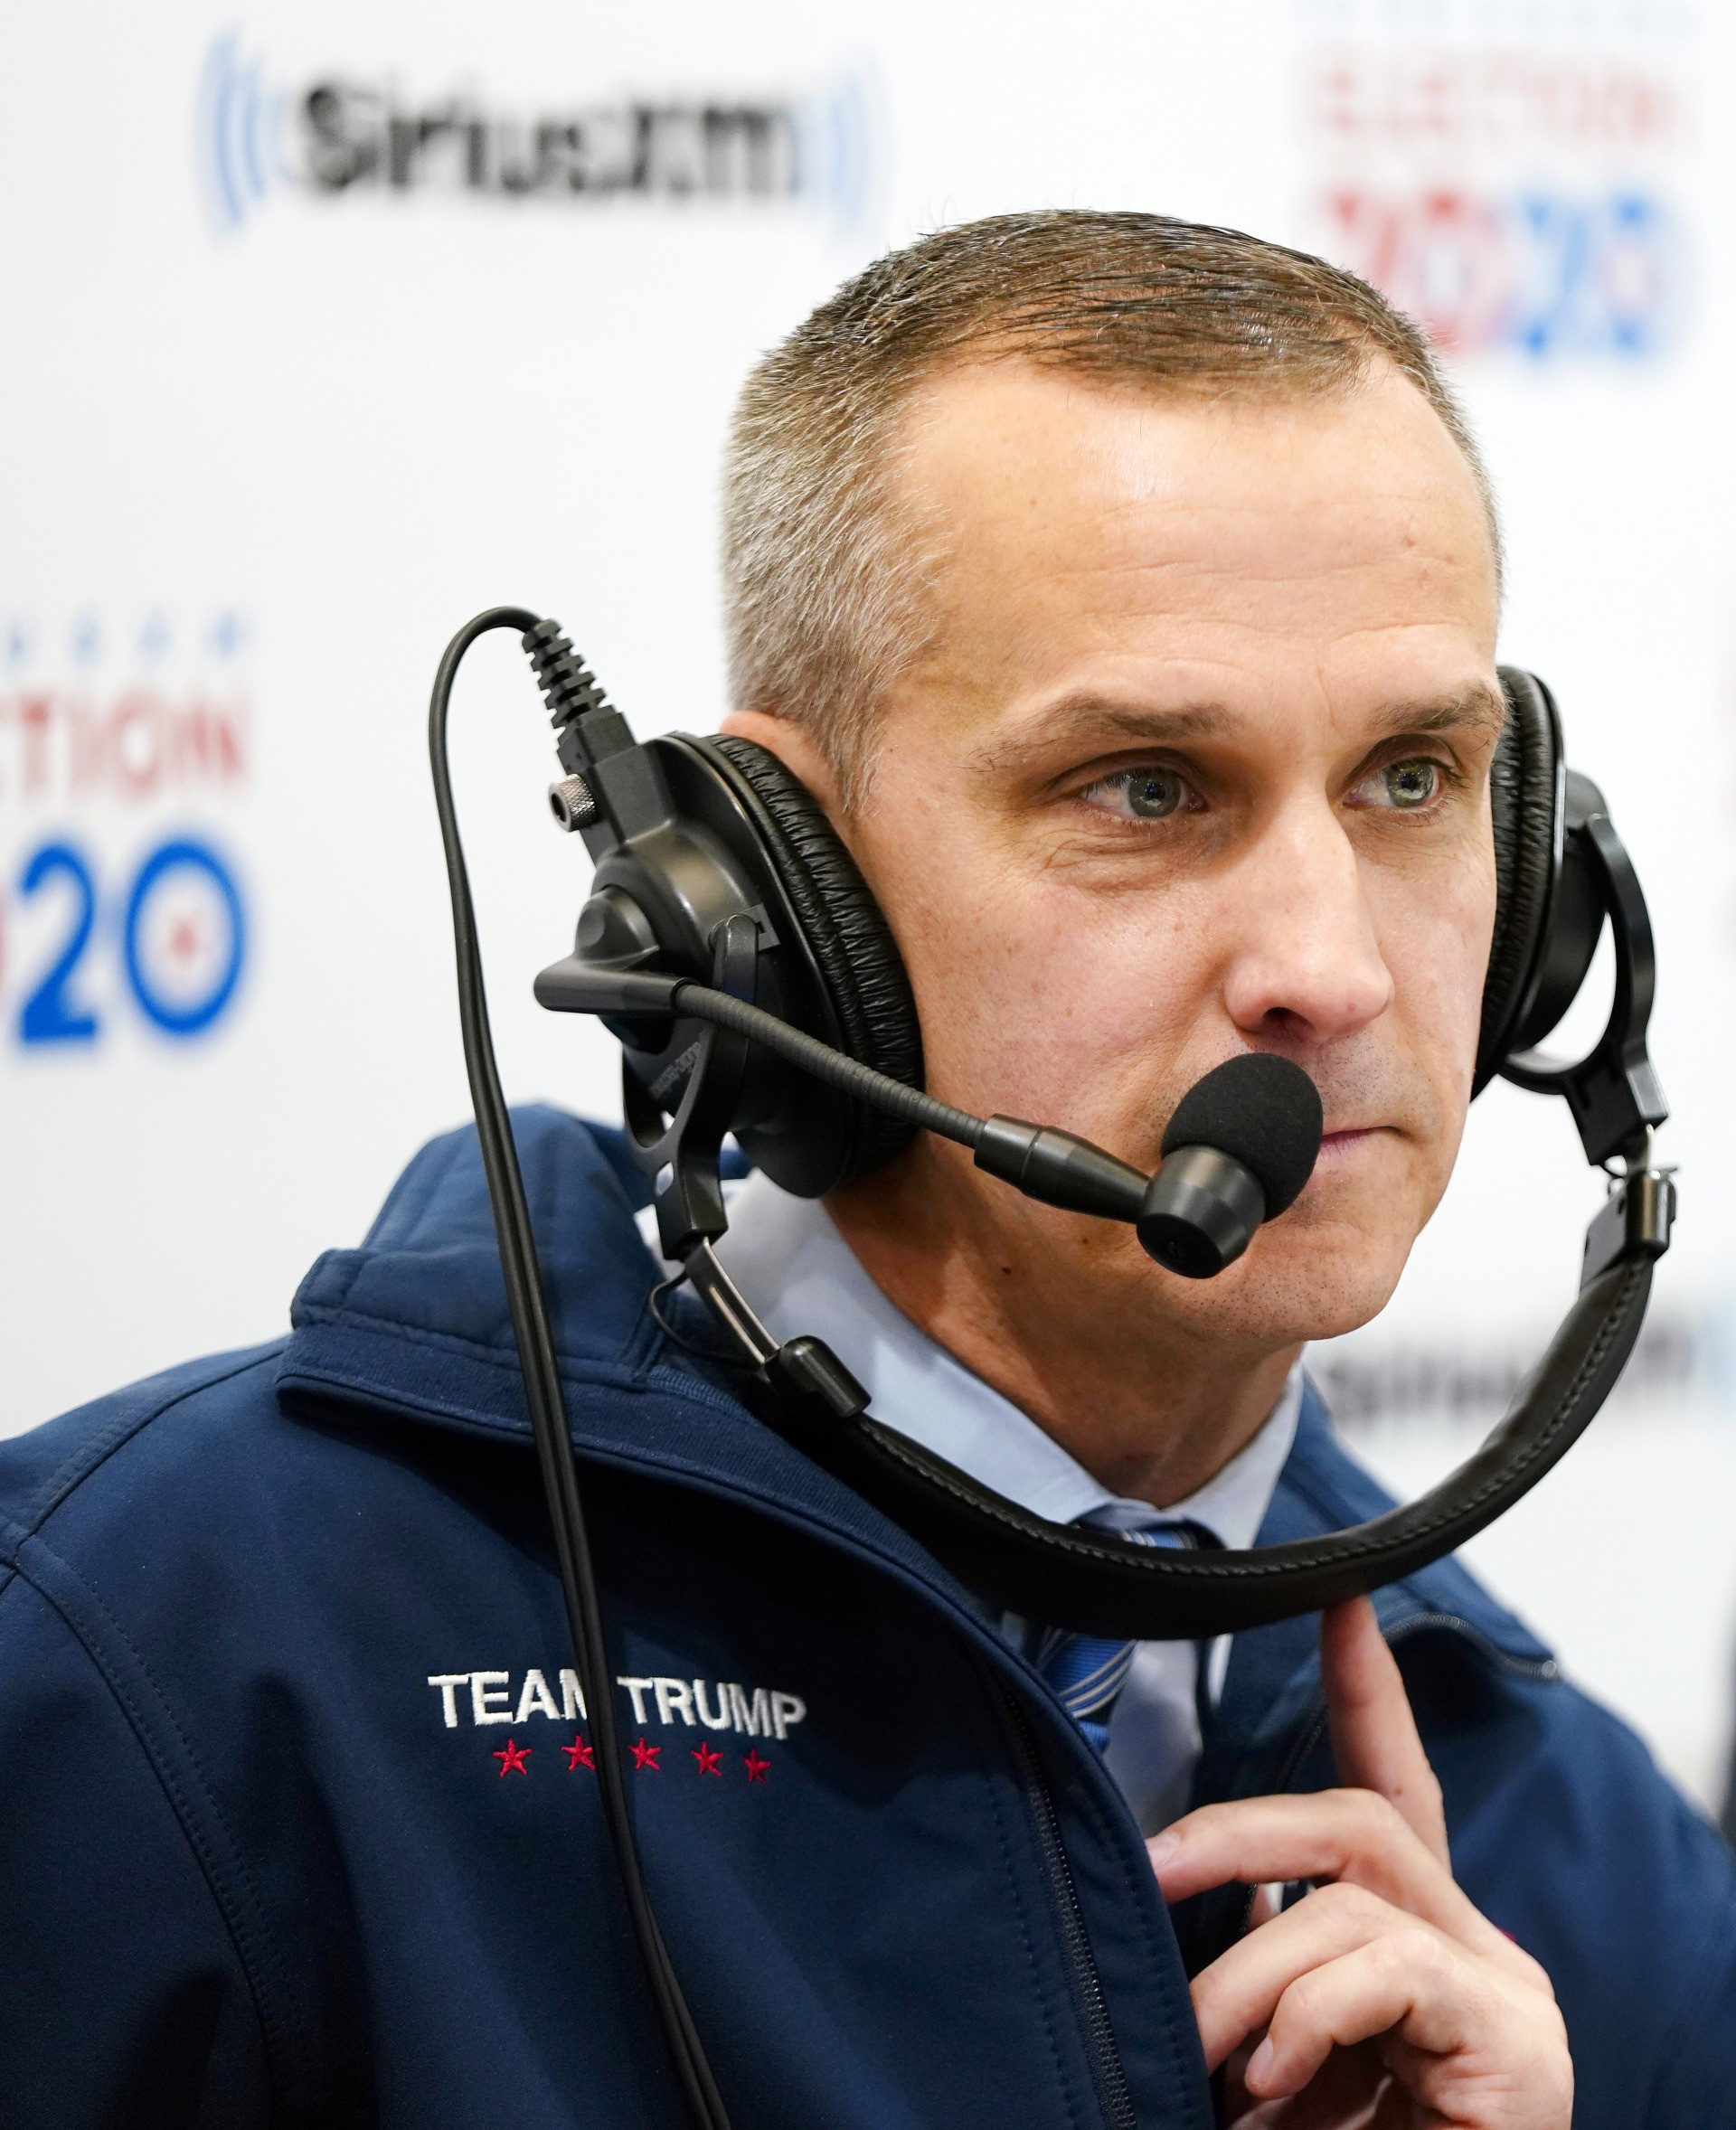 Senior adviser to Trump 2020, Corey Lewandowski looks on while talking with Sirius XM P.O.T.U.S host Tim Farley and David Bossie in the Coolidge Room at the DoubleTree by Hilton on February 11, 2020 in Manchester, New Hampshire. (Photo by Omar Rawlings/Getty Images for SiriusXM)